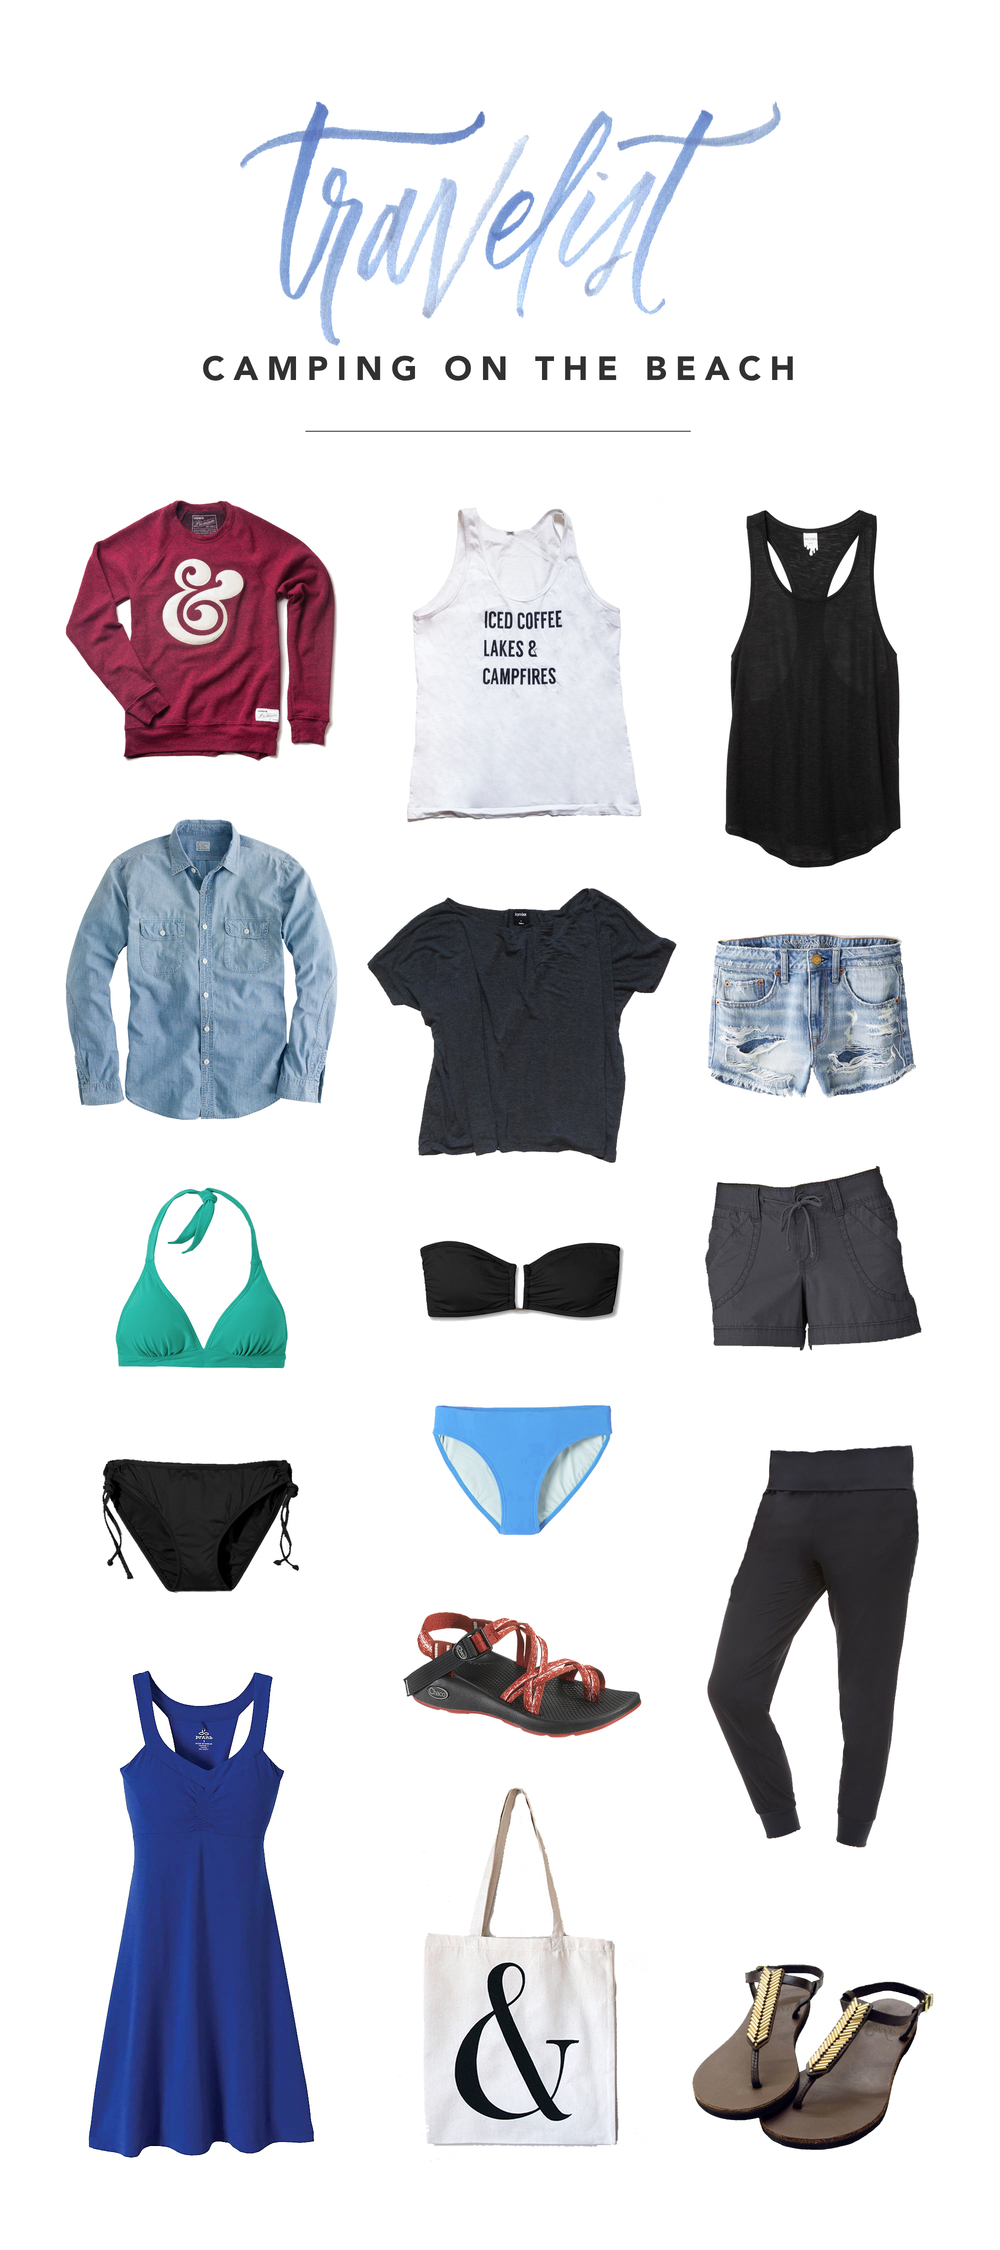 01. Ampersand Sweatshirt 02. Summer in the PNW Tank 03. Black Tank (similar) 04. Chambray button-up 05. Grey tshirt 06. Jean shorts (similar) 07. Green bikini top 08. Black bikini top 09. Grey shorts (similar) 10. Black bikini bottoms 11. Blue bikini bottoms (similar) 12. Joggers 13. Dress 14. Chacos 15. Ampersand tote (discontinued) 16. T-strap Sandals